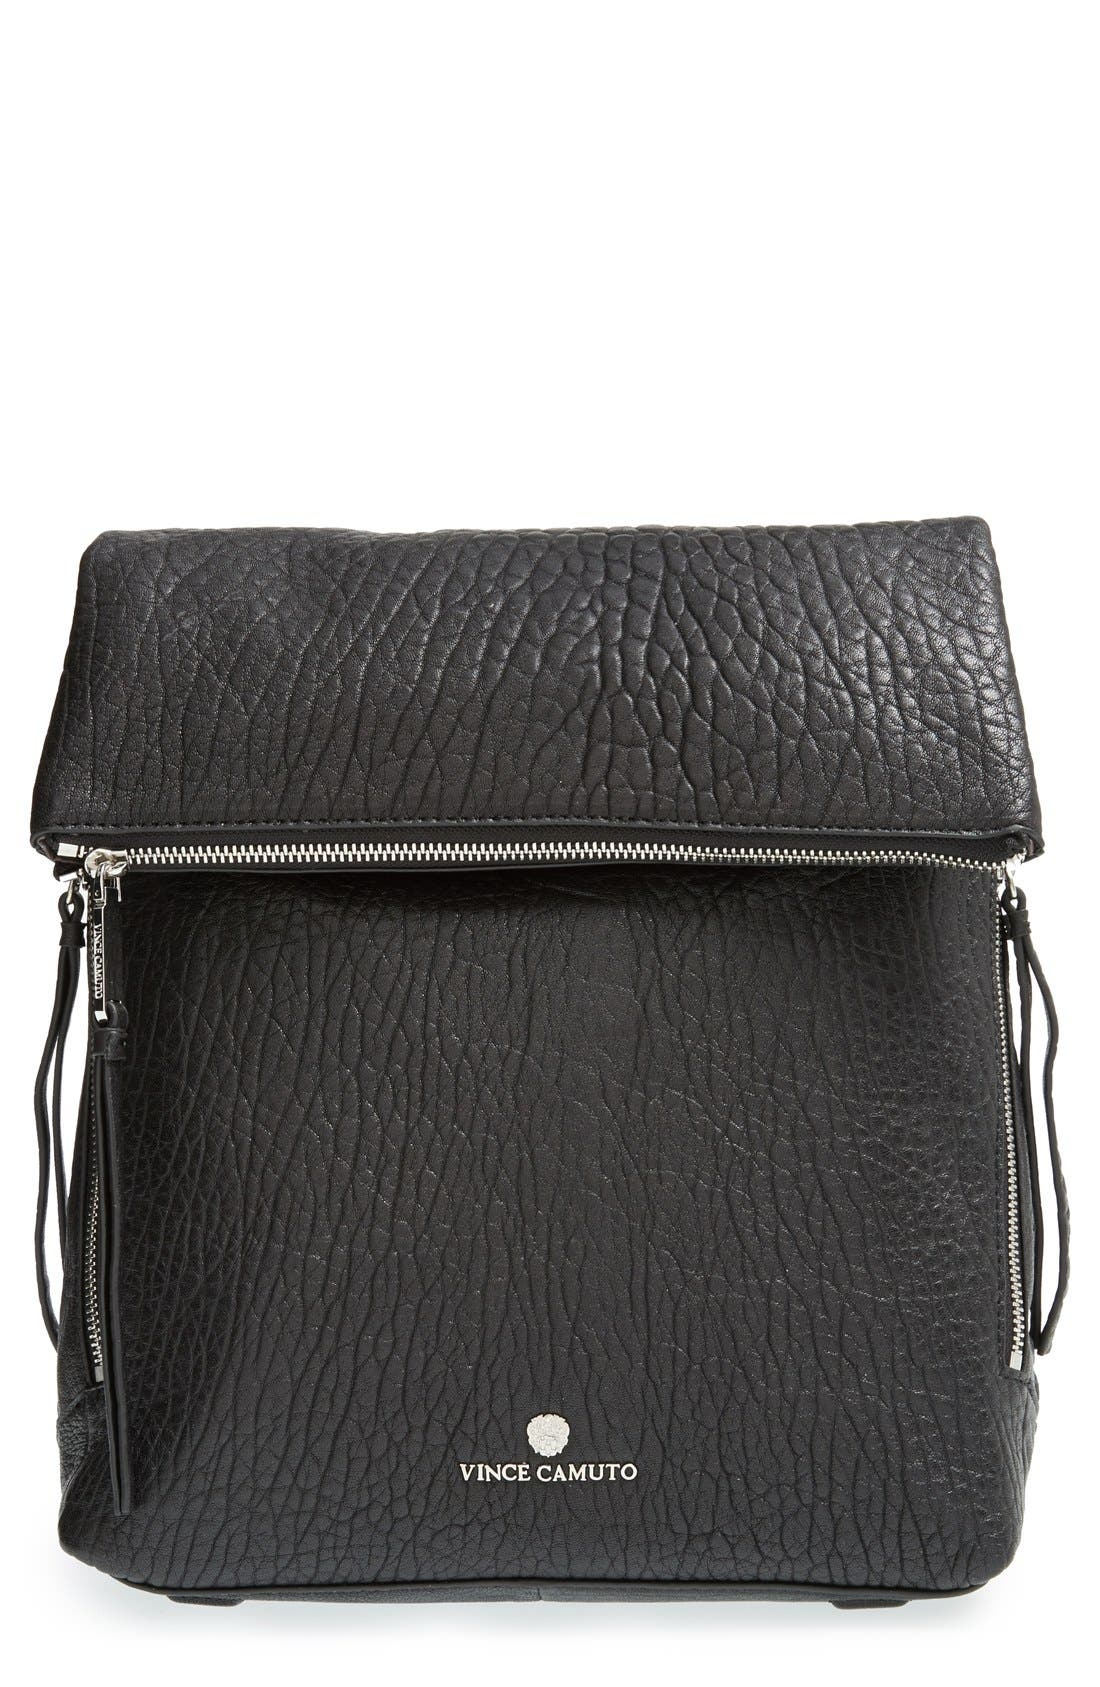 Alternate Image 1 Selected - Vince Camuto 'Paola' Backpack